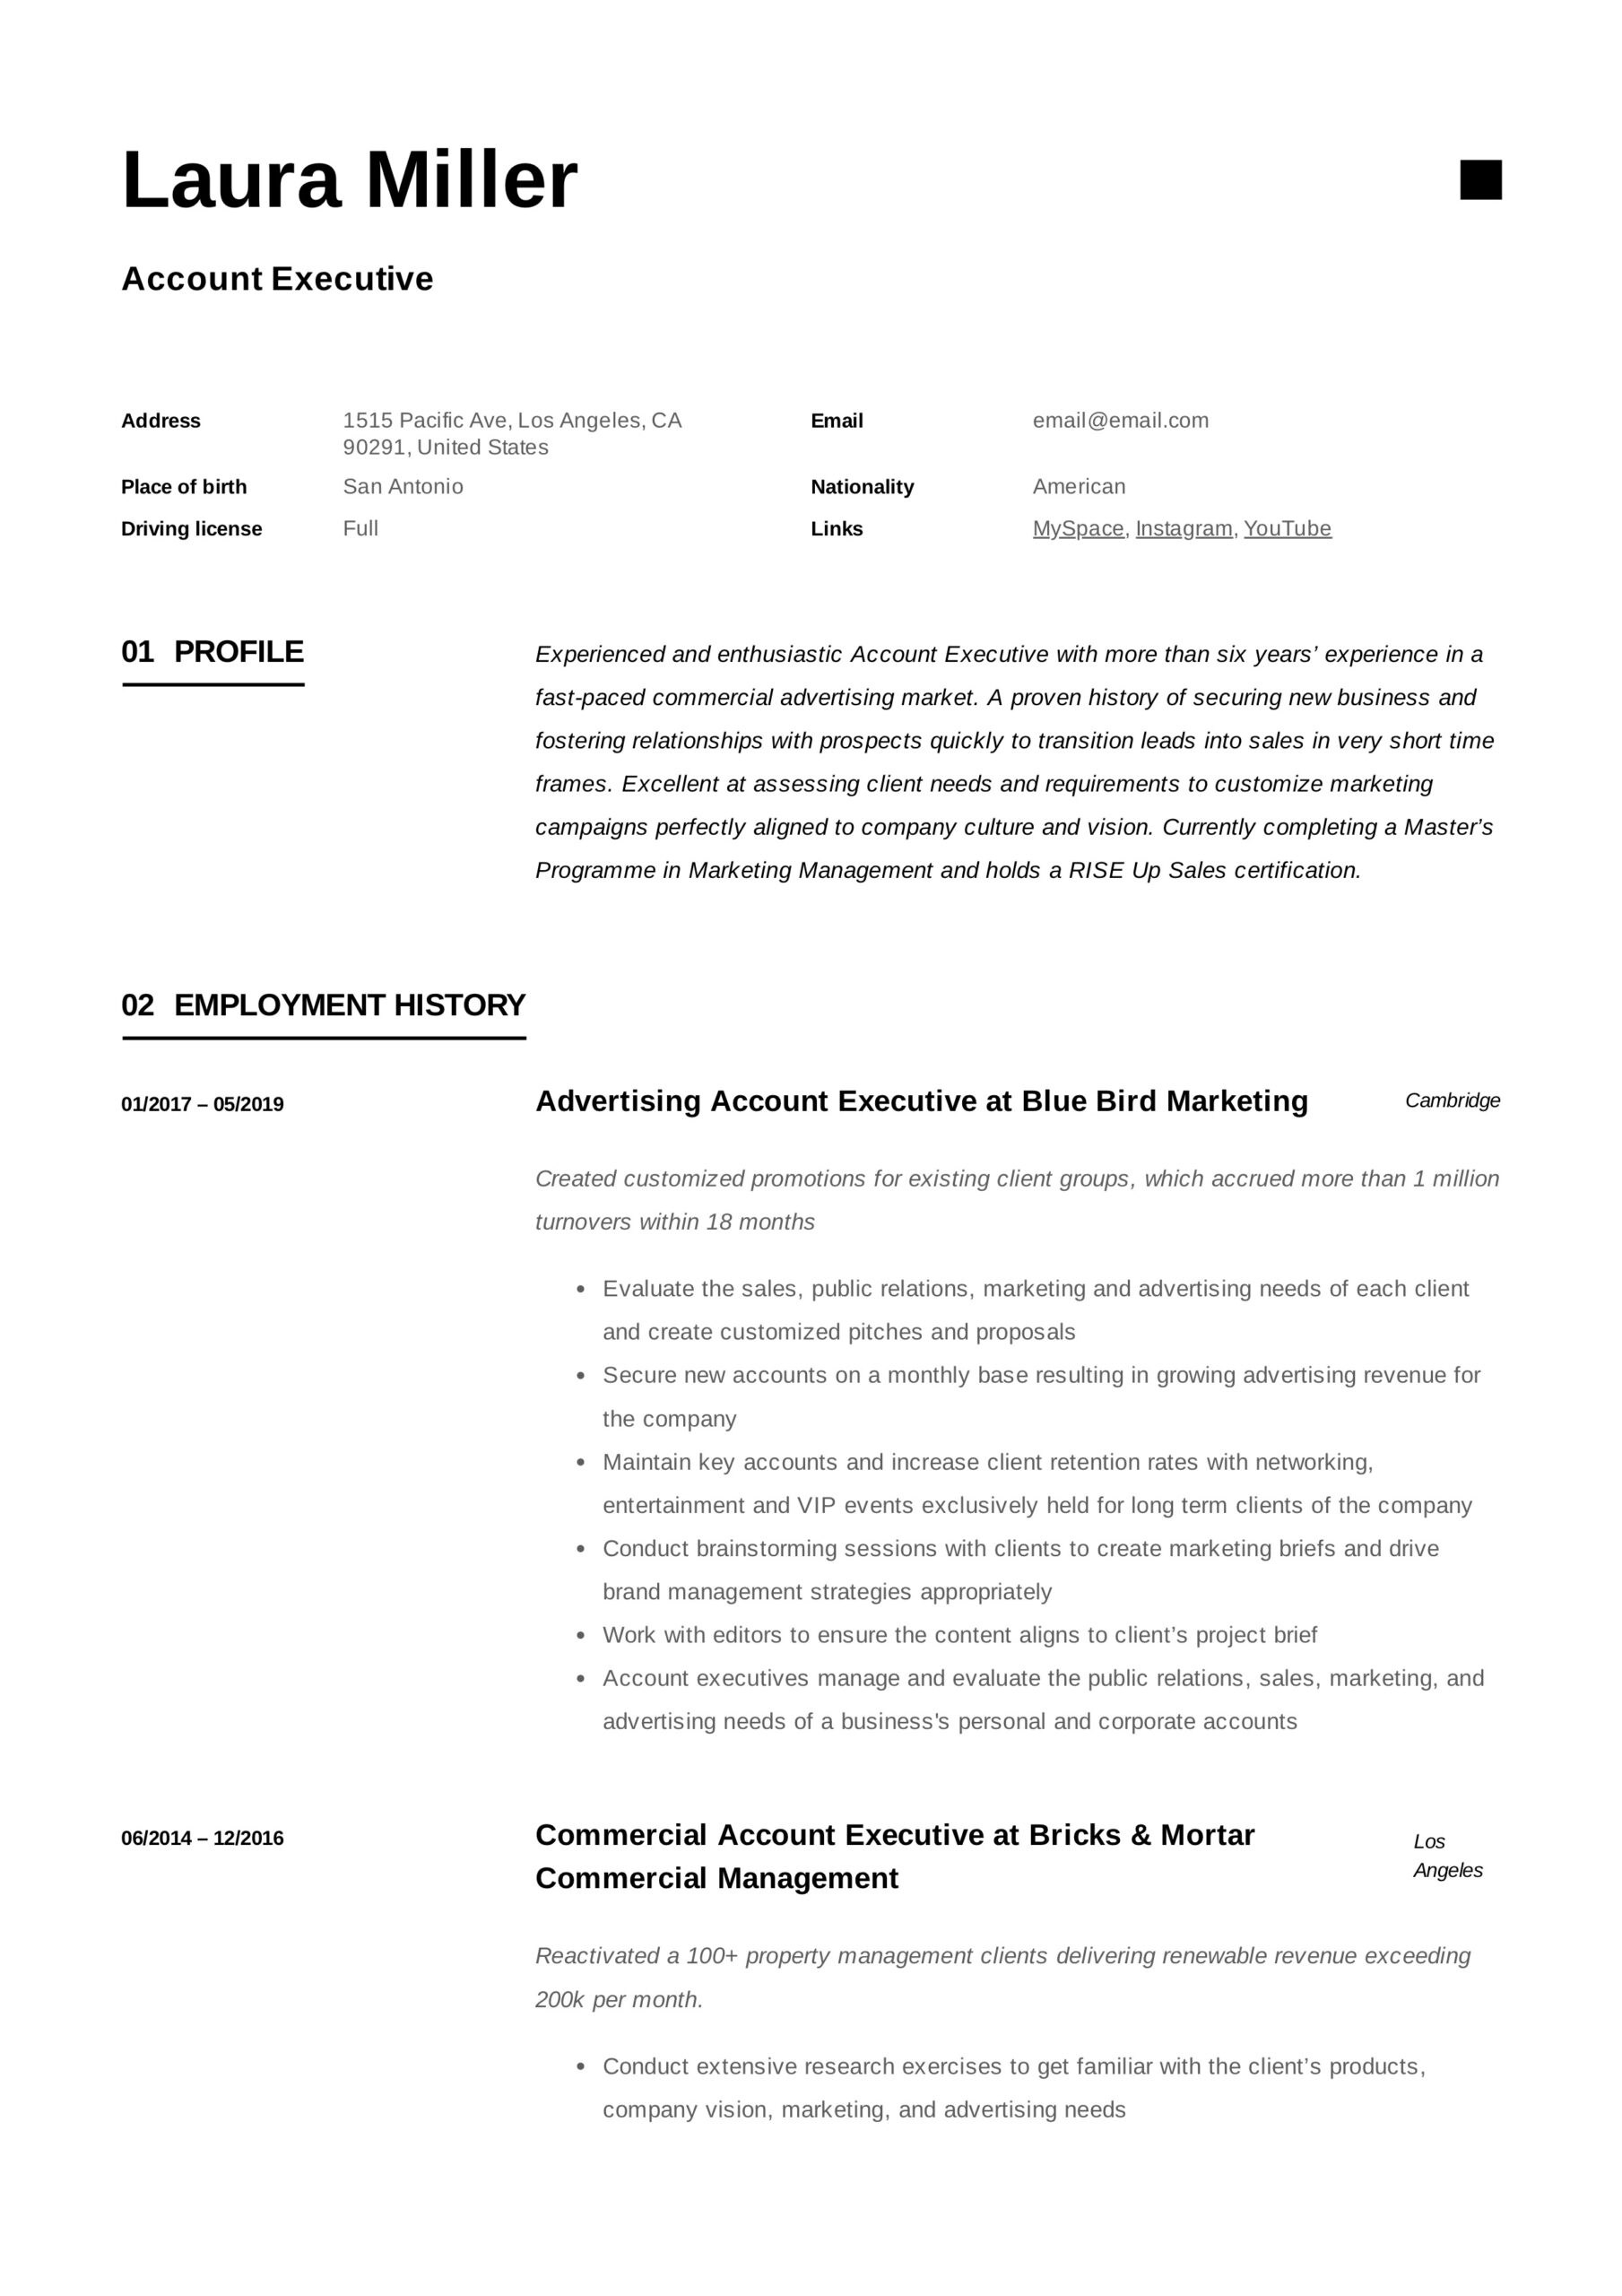 account executive resume writing guide templates pdf media example safety trainer Resume Media Account Executive Resume